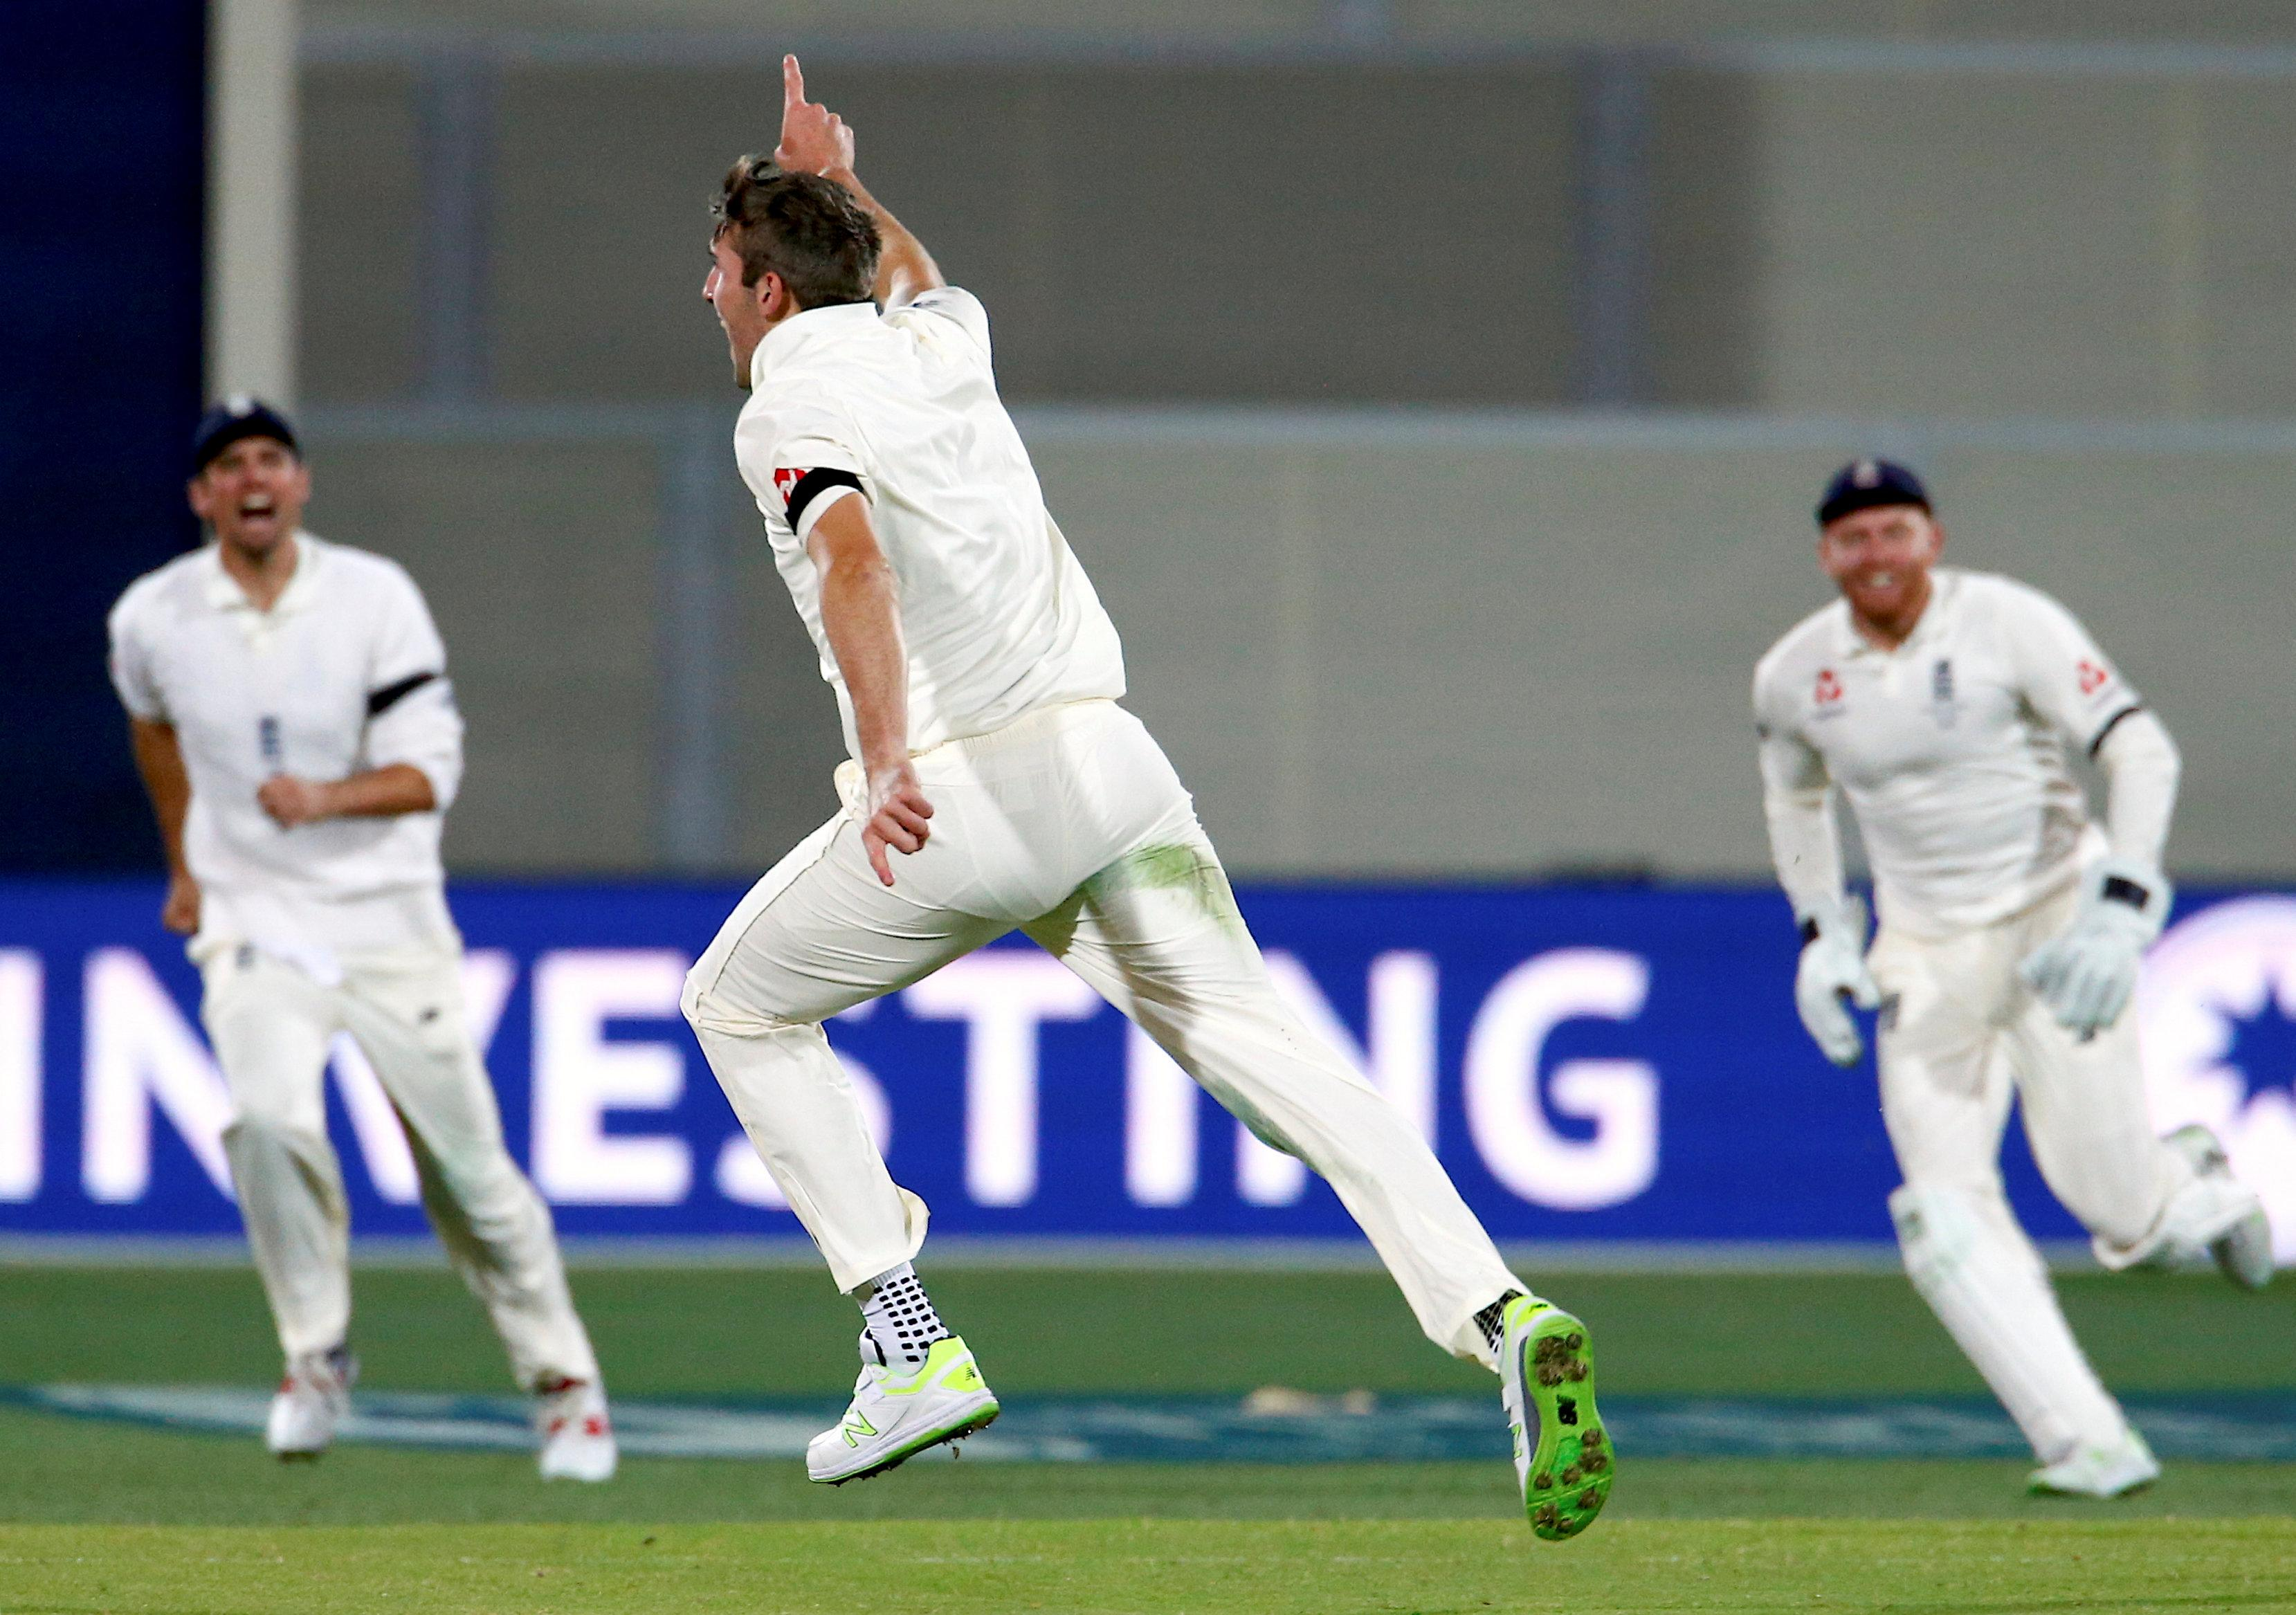 Overton In For Woakes In Manchester